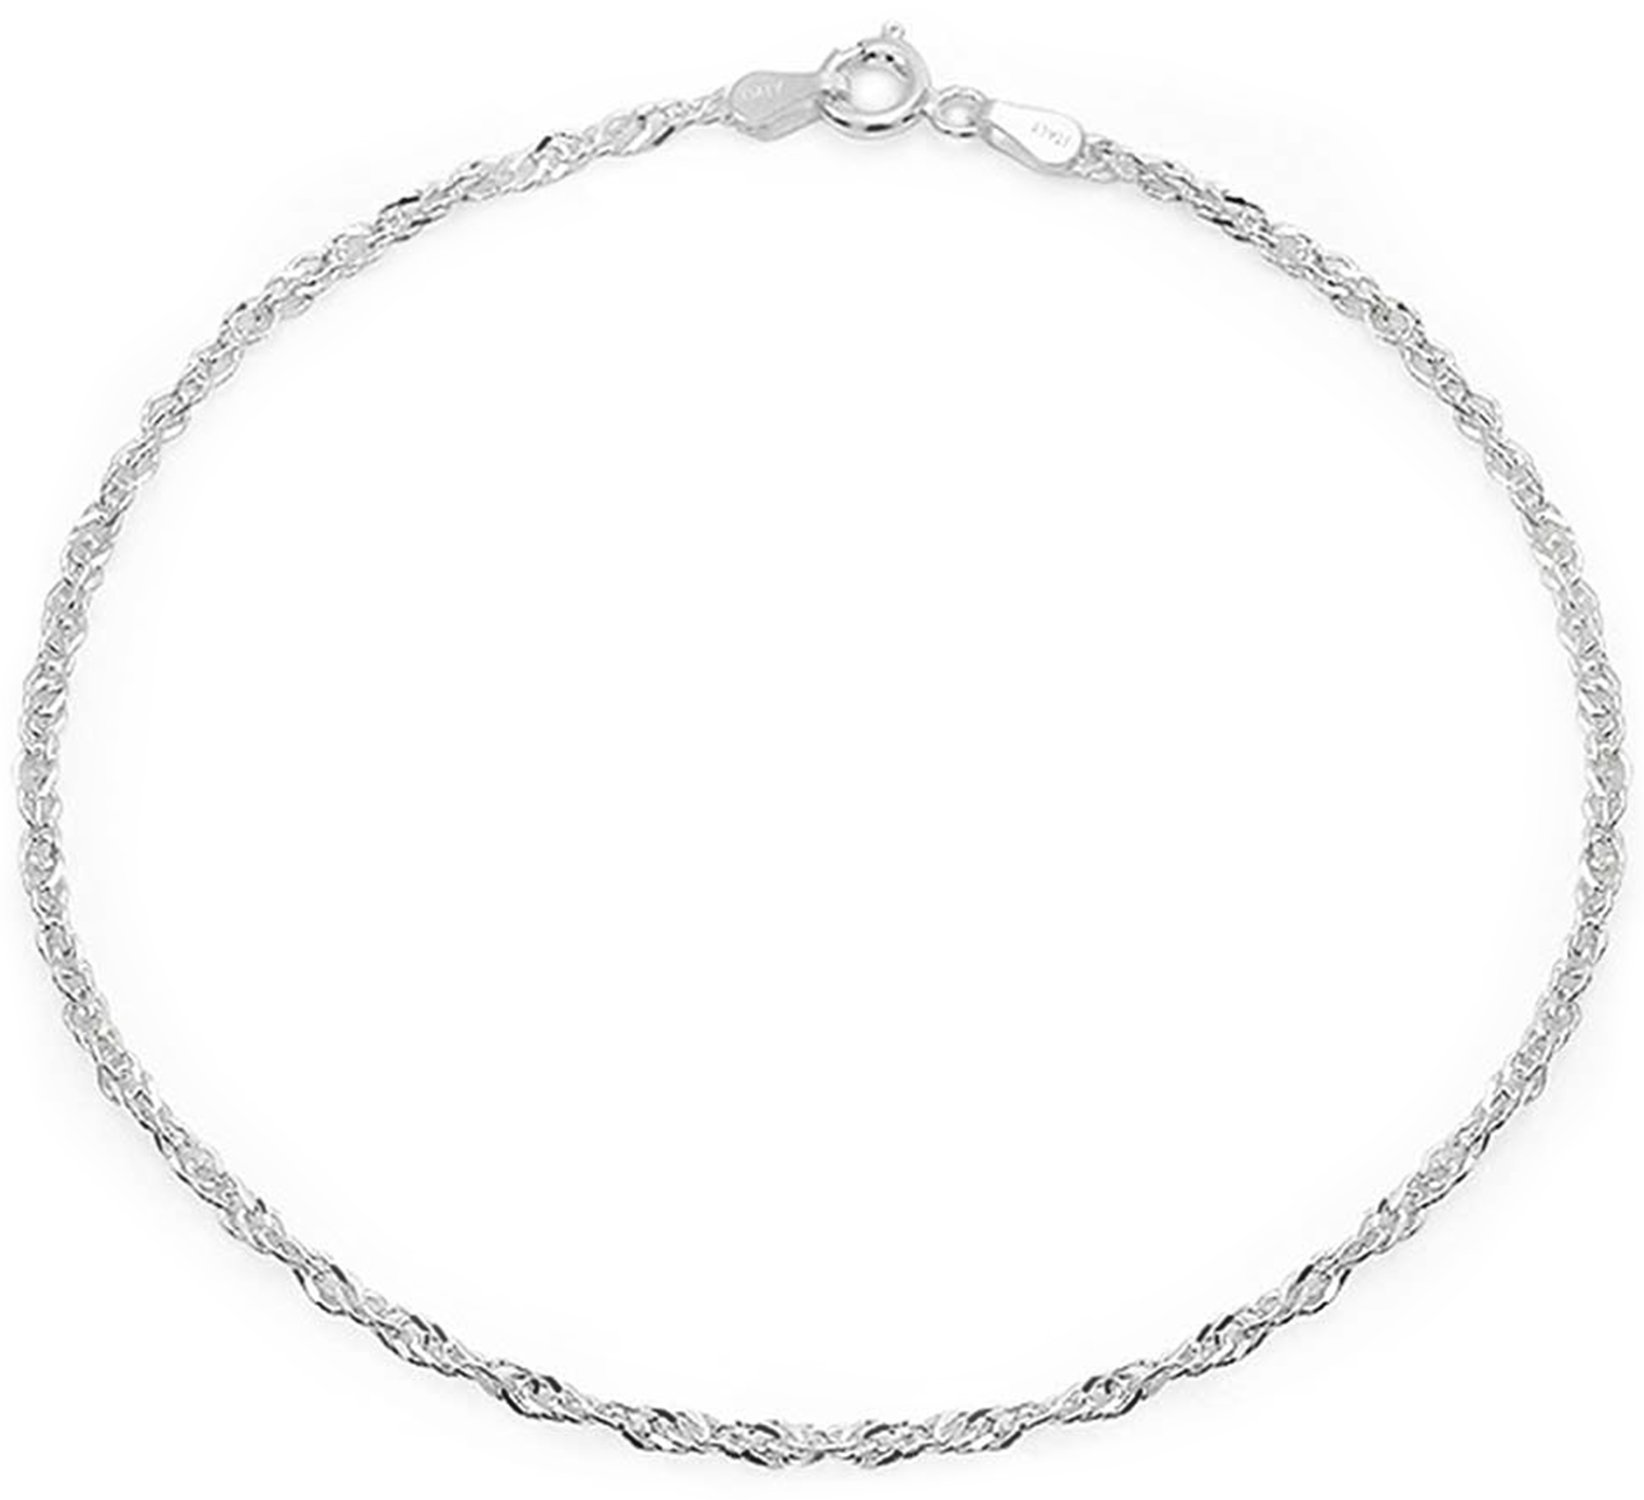 Sterling Silver Anklet Singapore Chain Ankle Bracelet Italy